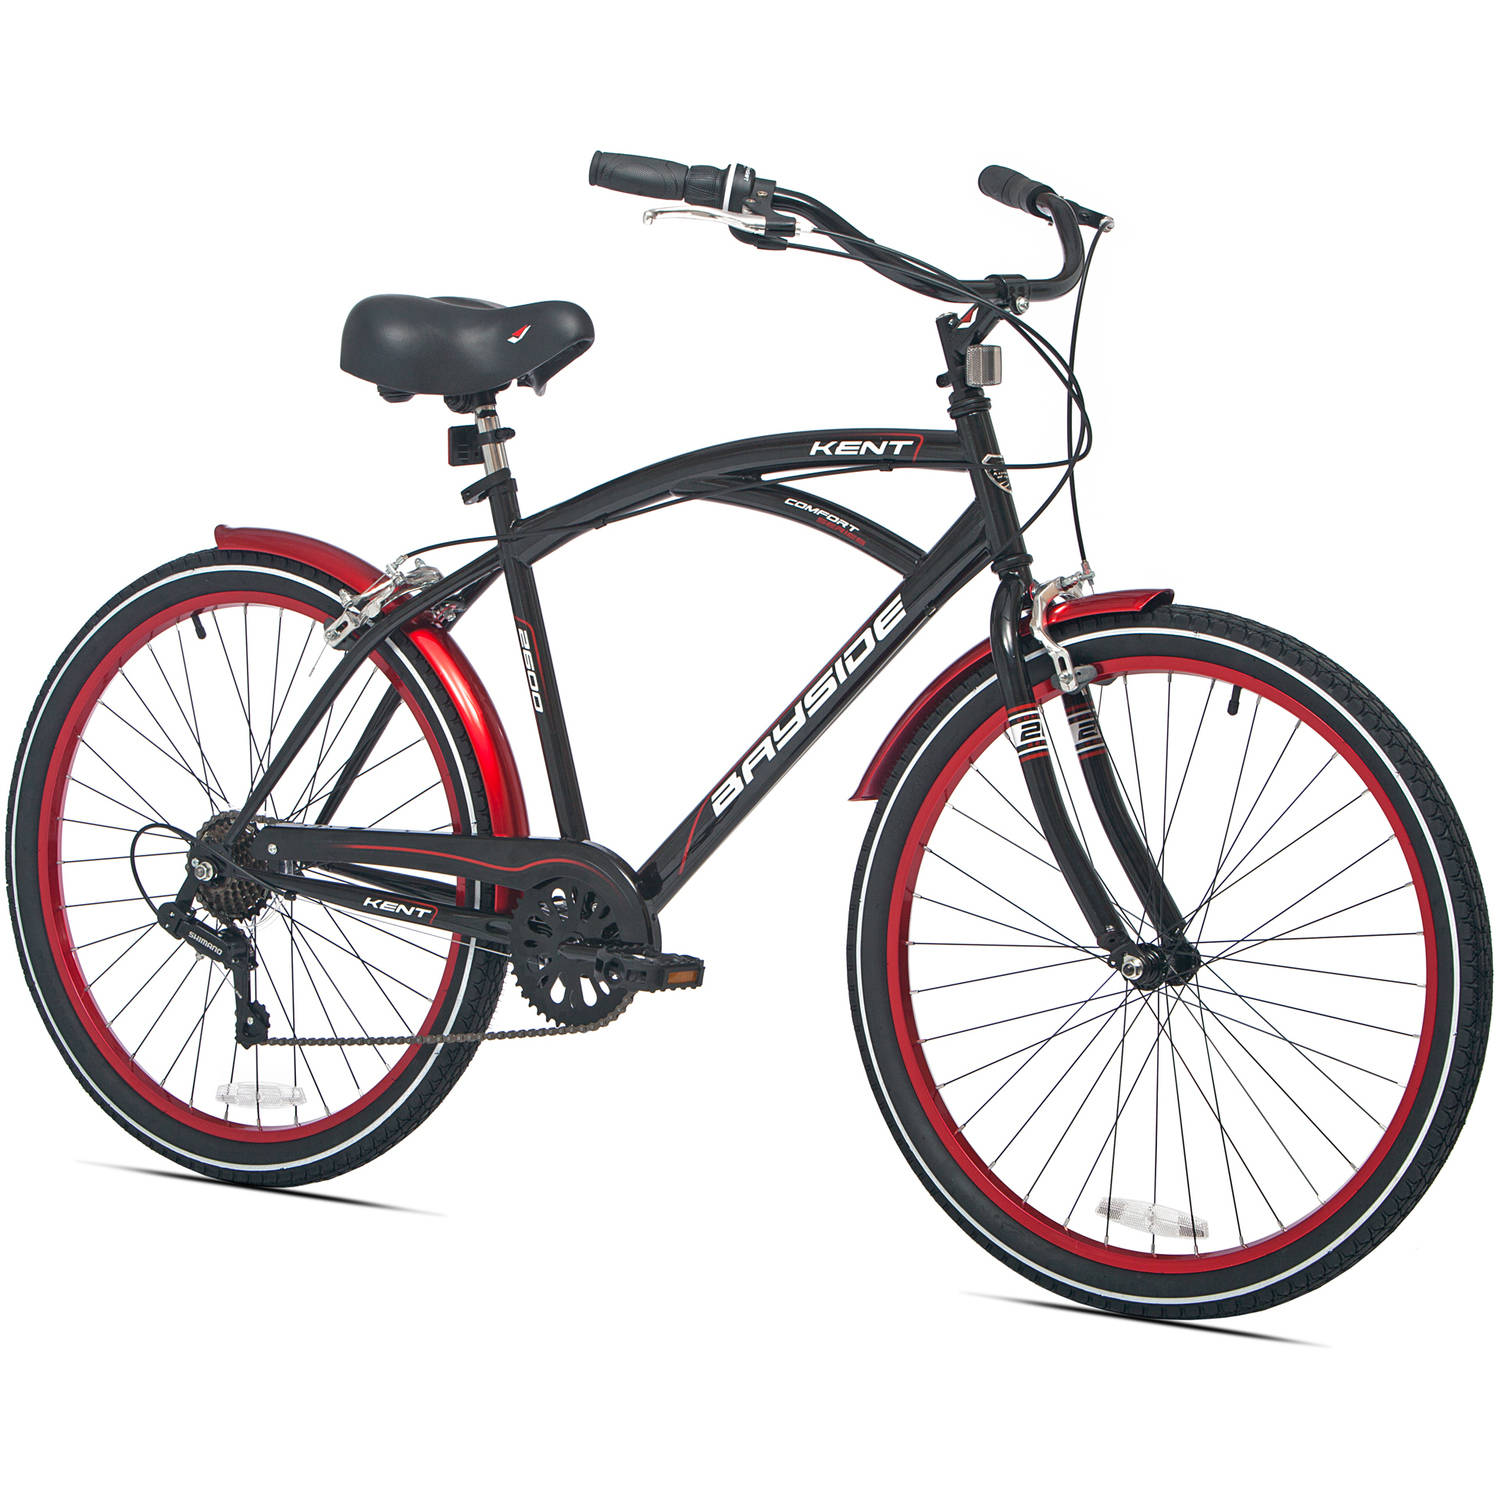 Walmart Canada has discounted a few bikes from $98 down to $ That is a $10 savings, which works out to just over 10% off a bunch of basic bikes.